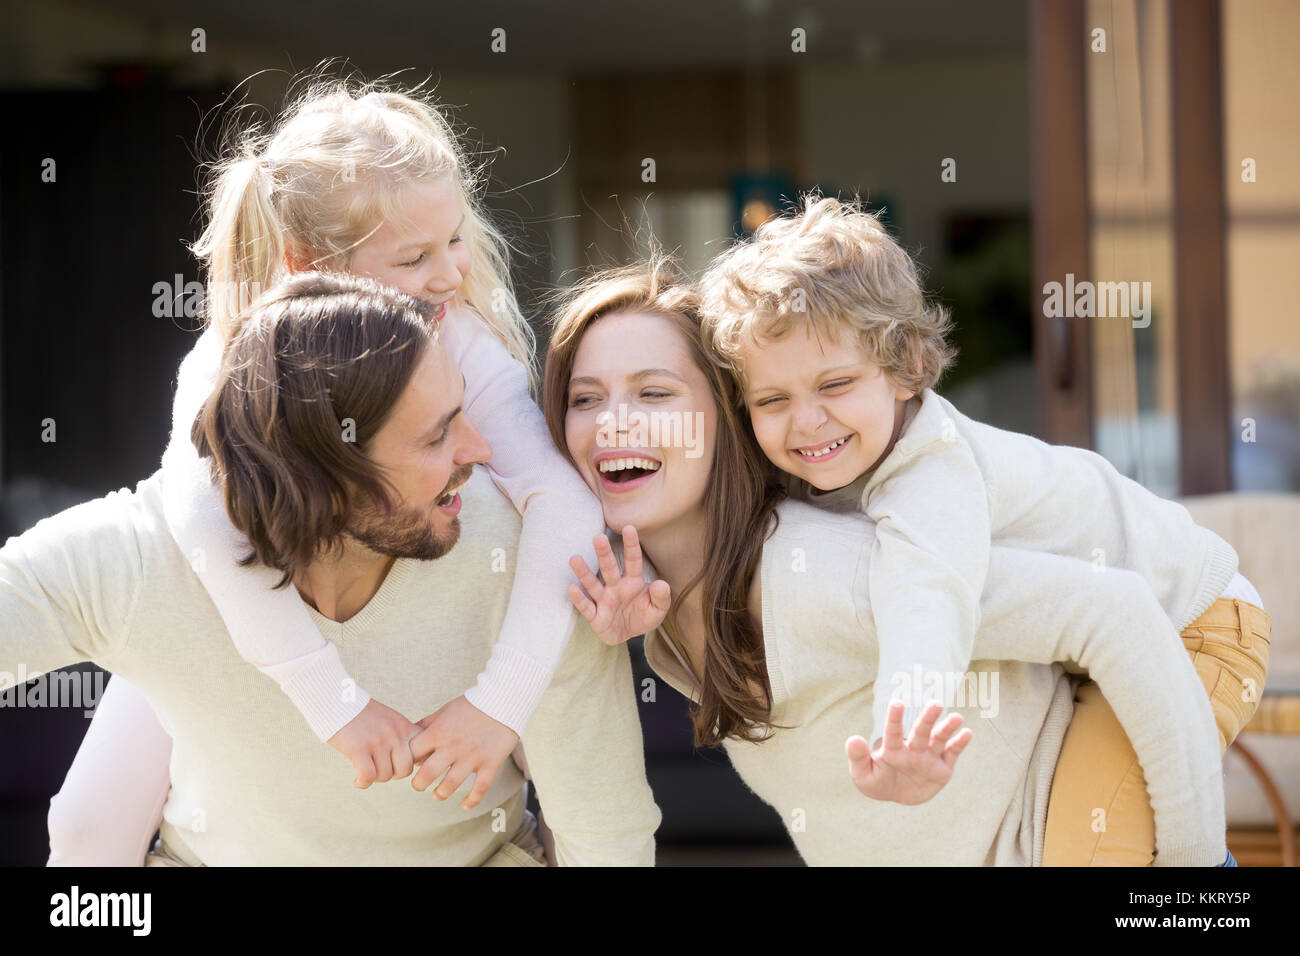 Happy smiling parents usurpation de son fils et sa fille, leis Photo Stock